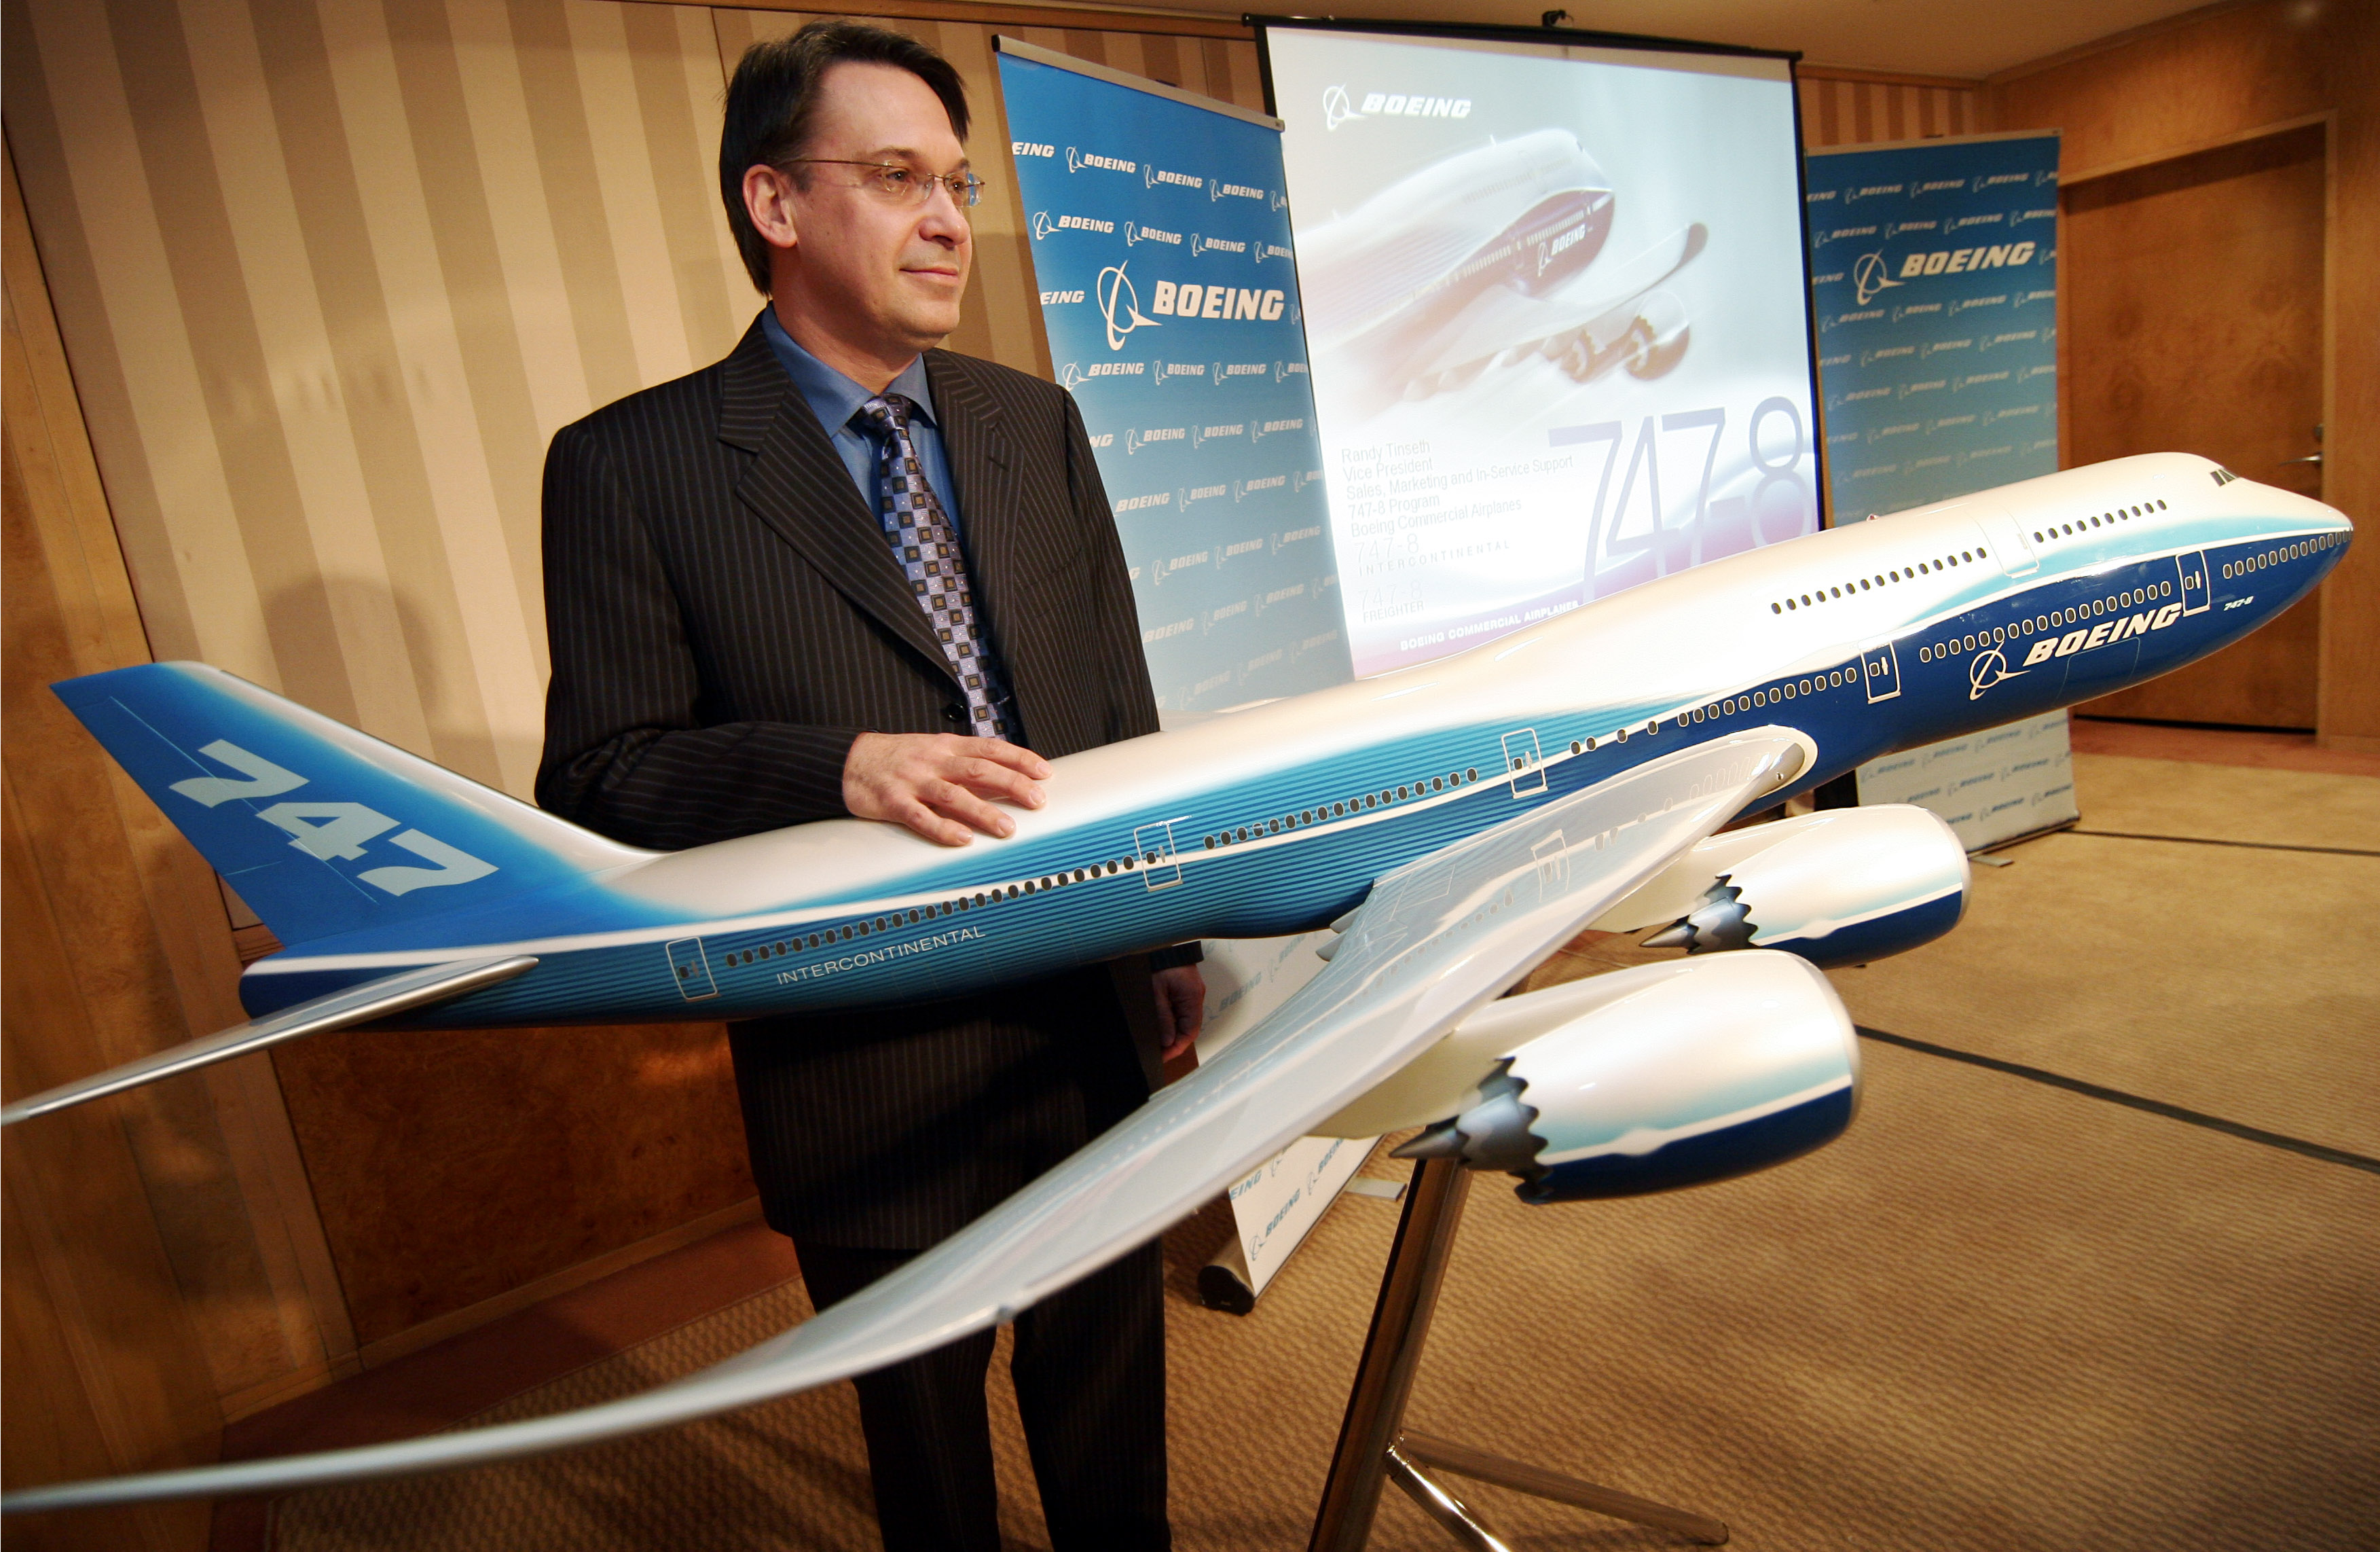 Randy Tinseth, Boeing Commercial Airplanes vice president- Sales, Marketing and In-Services Support, 747 Programs, poses with a scale model of the Boe...